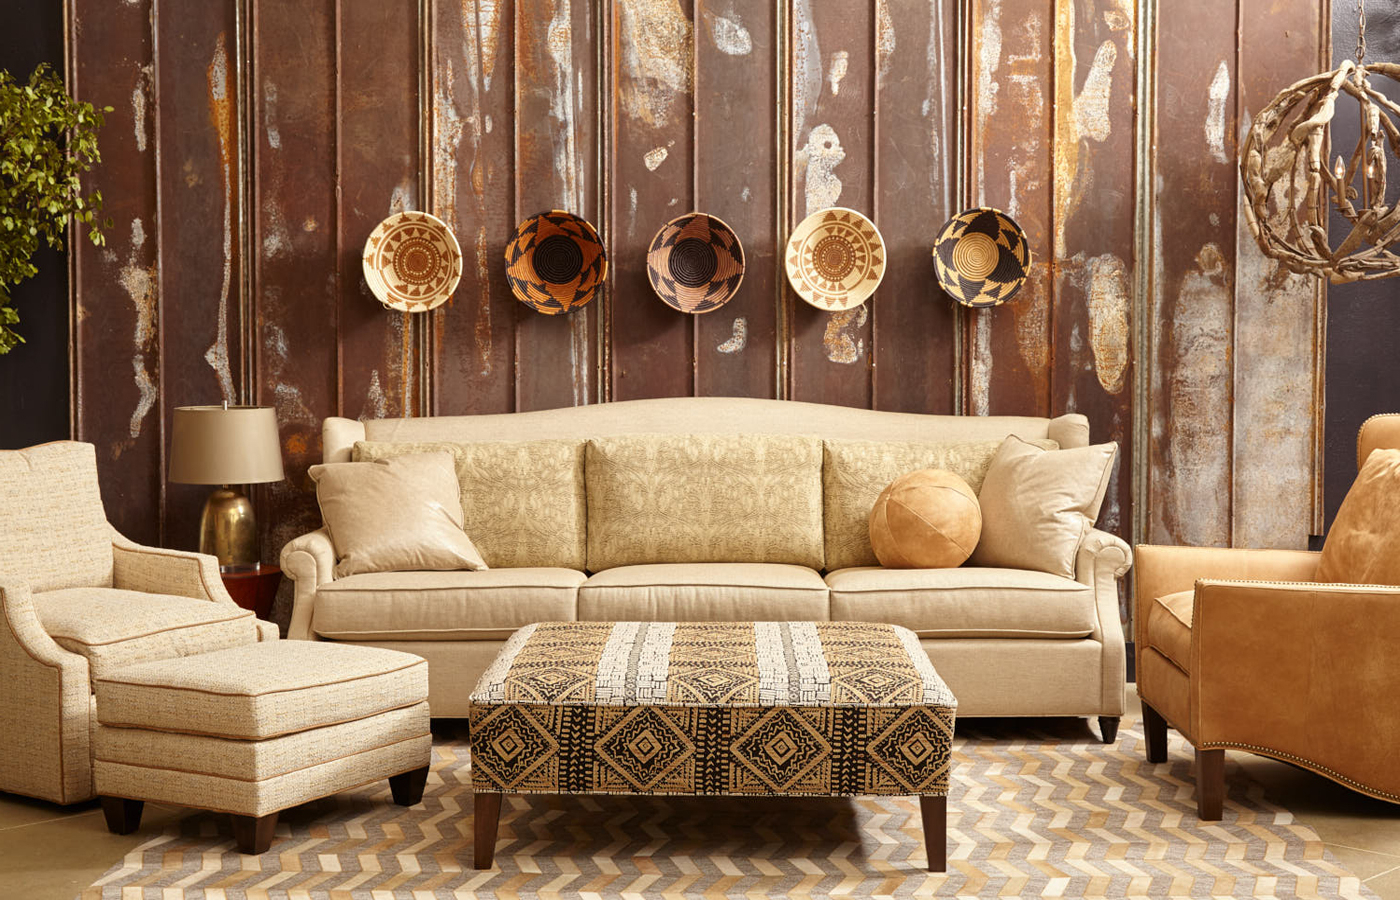 Favorite Norwalk Furniture Intended For Norwalk Sofa And Chairs (View 2 of 20)